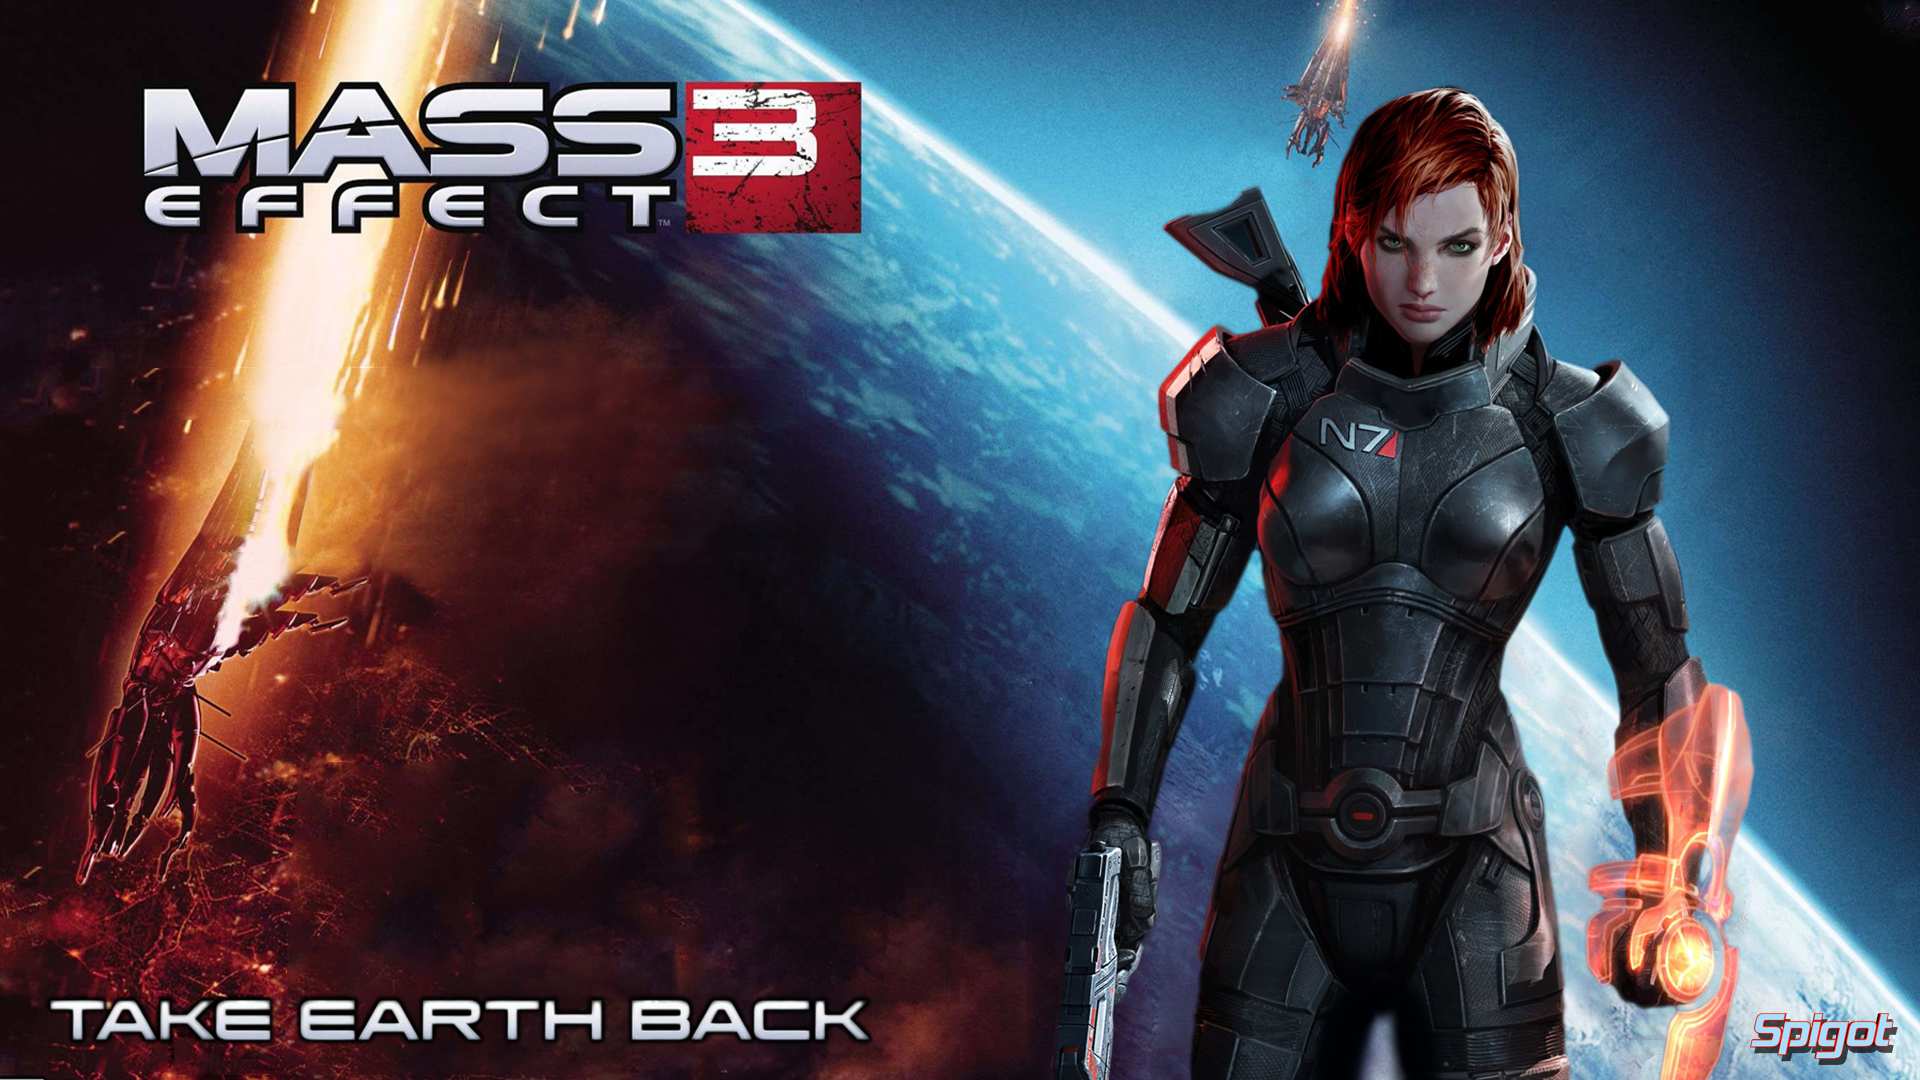 Mass Effect 3 Wallpapers George Spigot S Blog